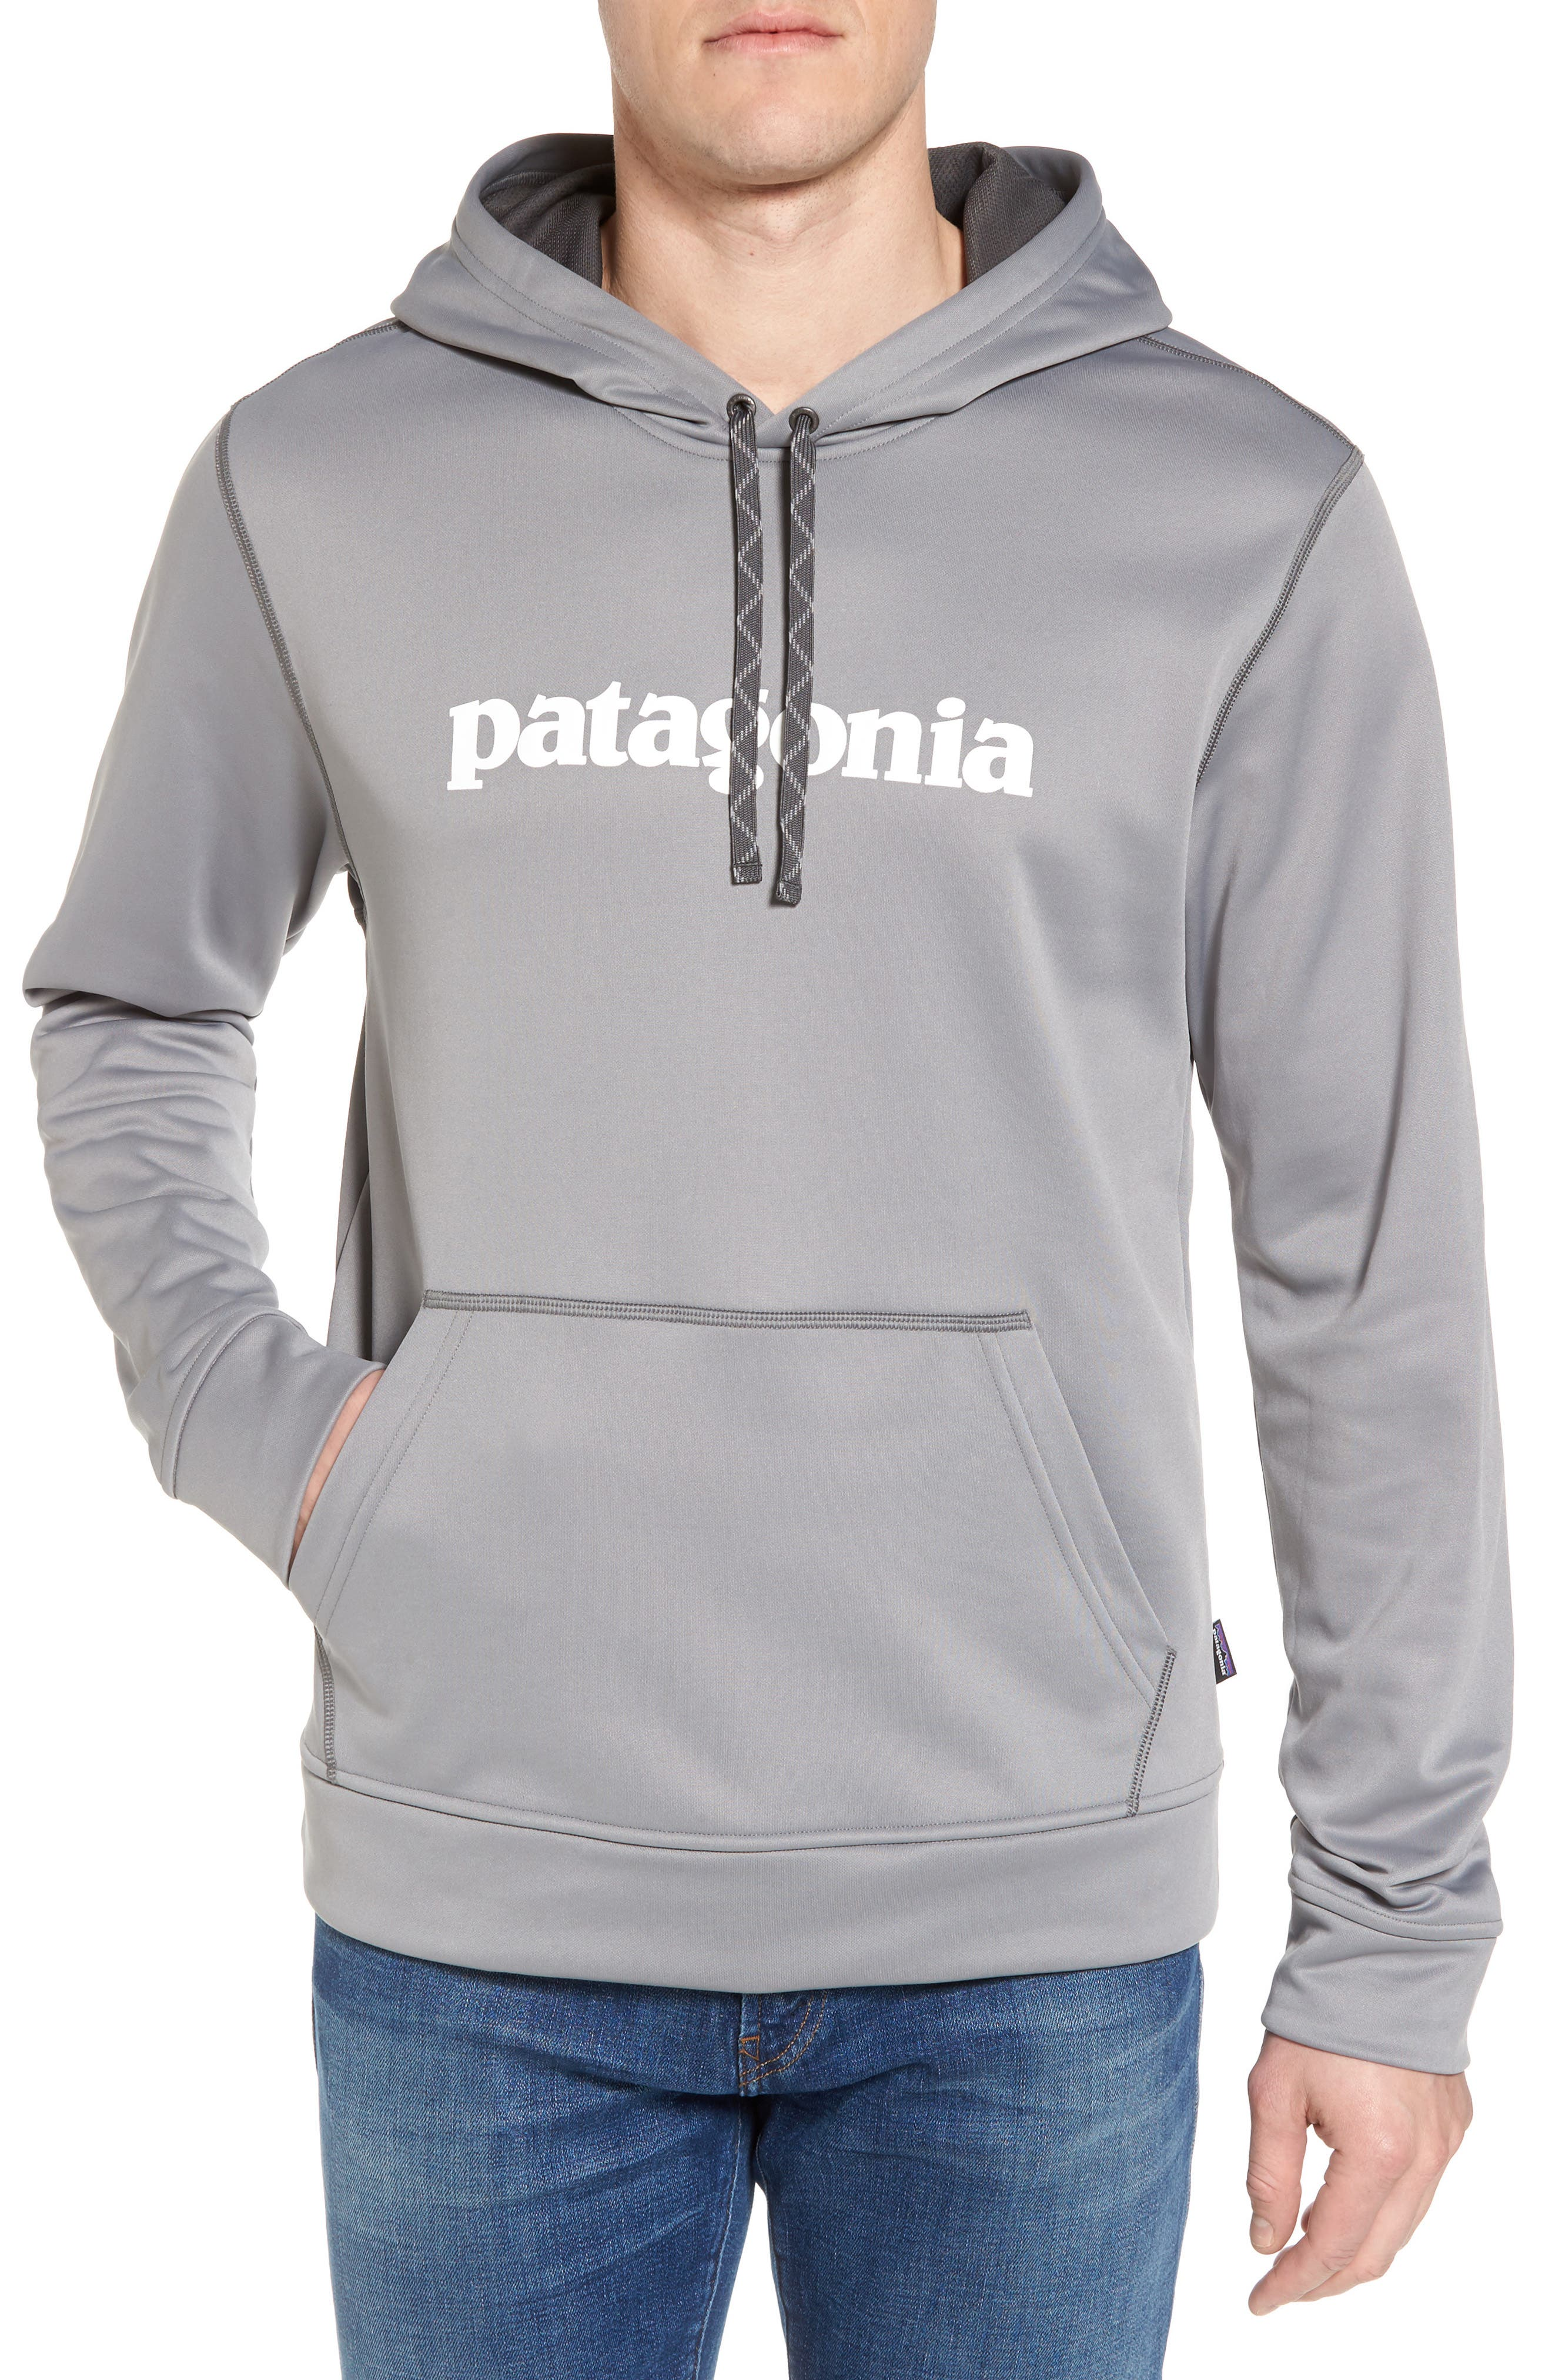 Polycycle Hoodie,                             Main thumbnail 1, color,                             Feather Grey/ White